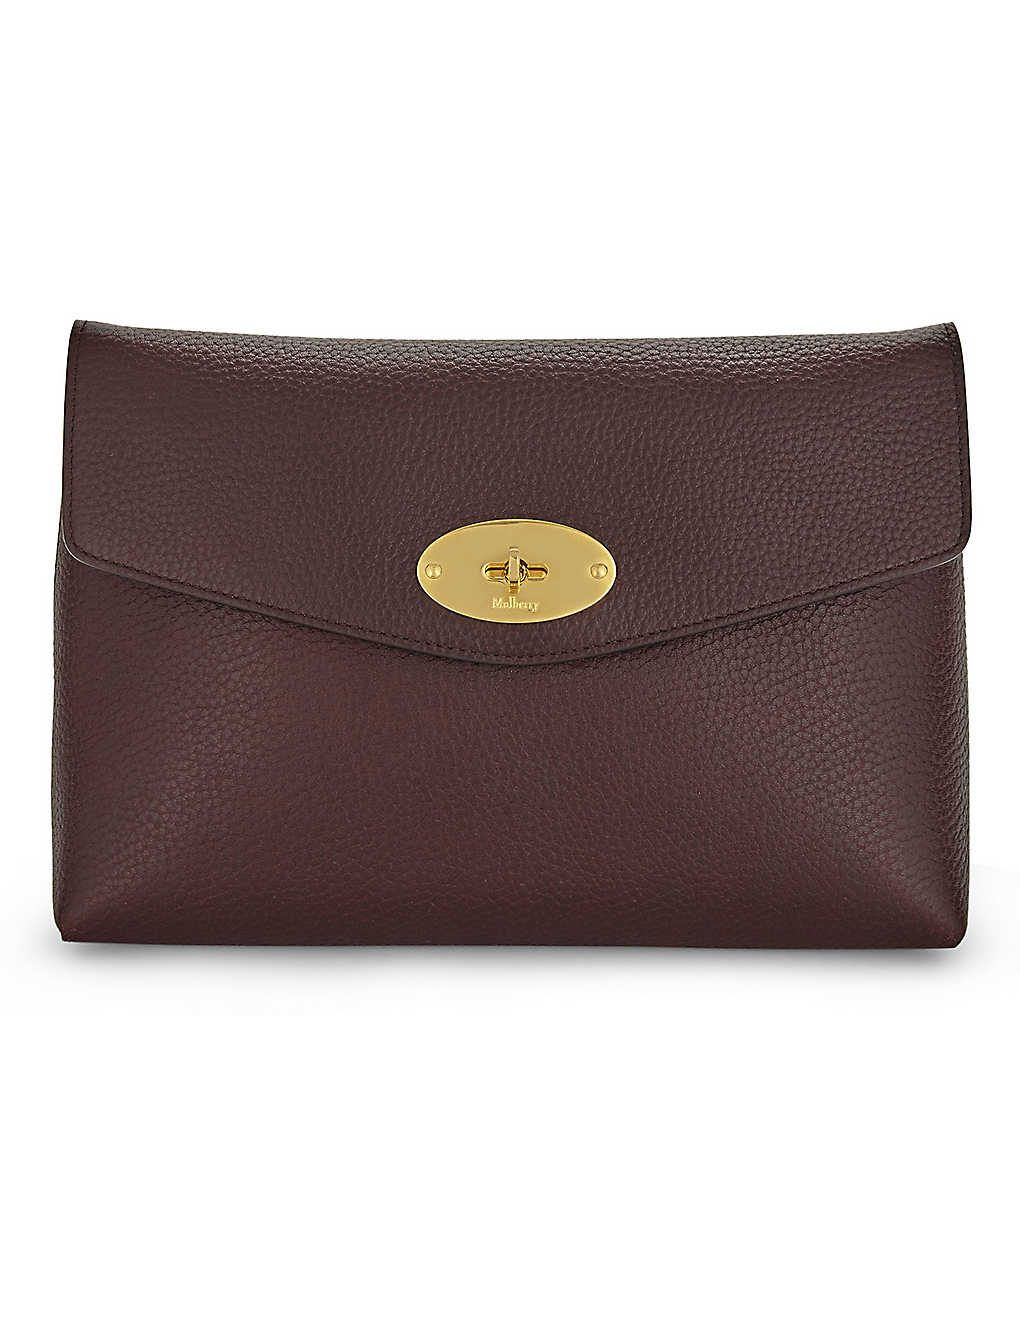 0cb7cf4a74 MULBERRY - Darley large leather cosmetic pouch | Selfridges.com